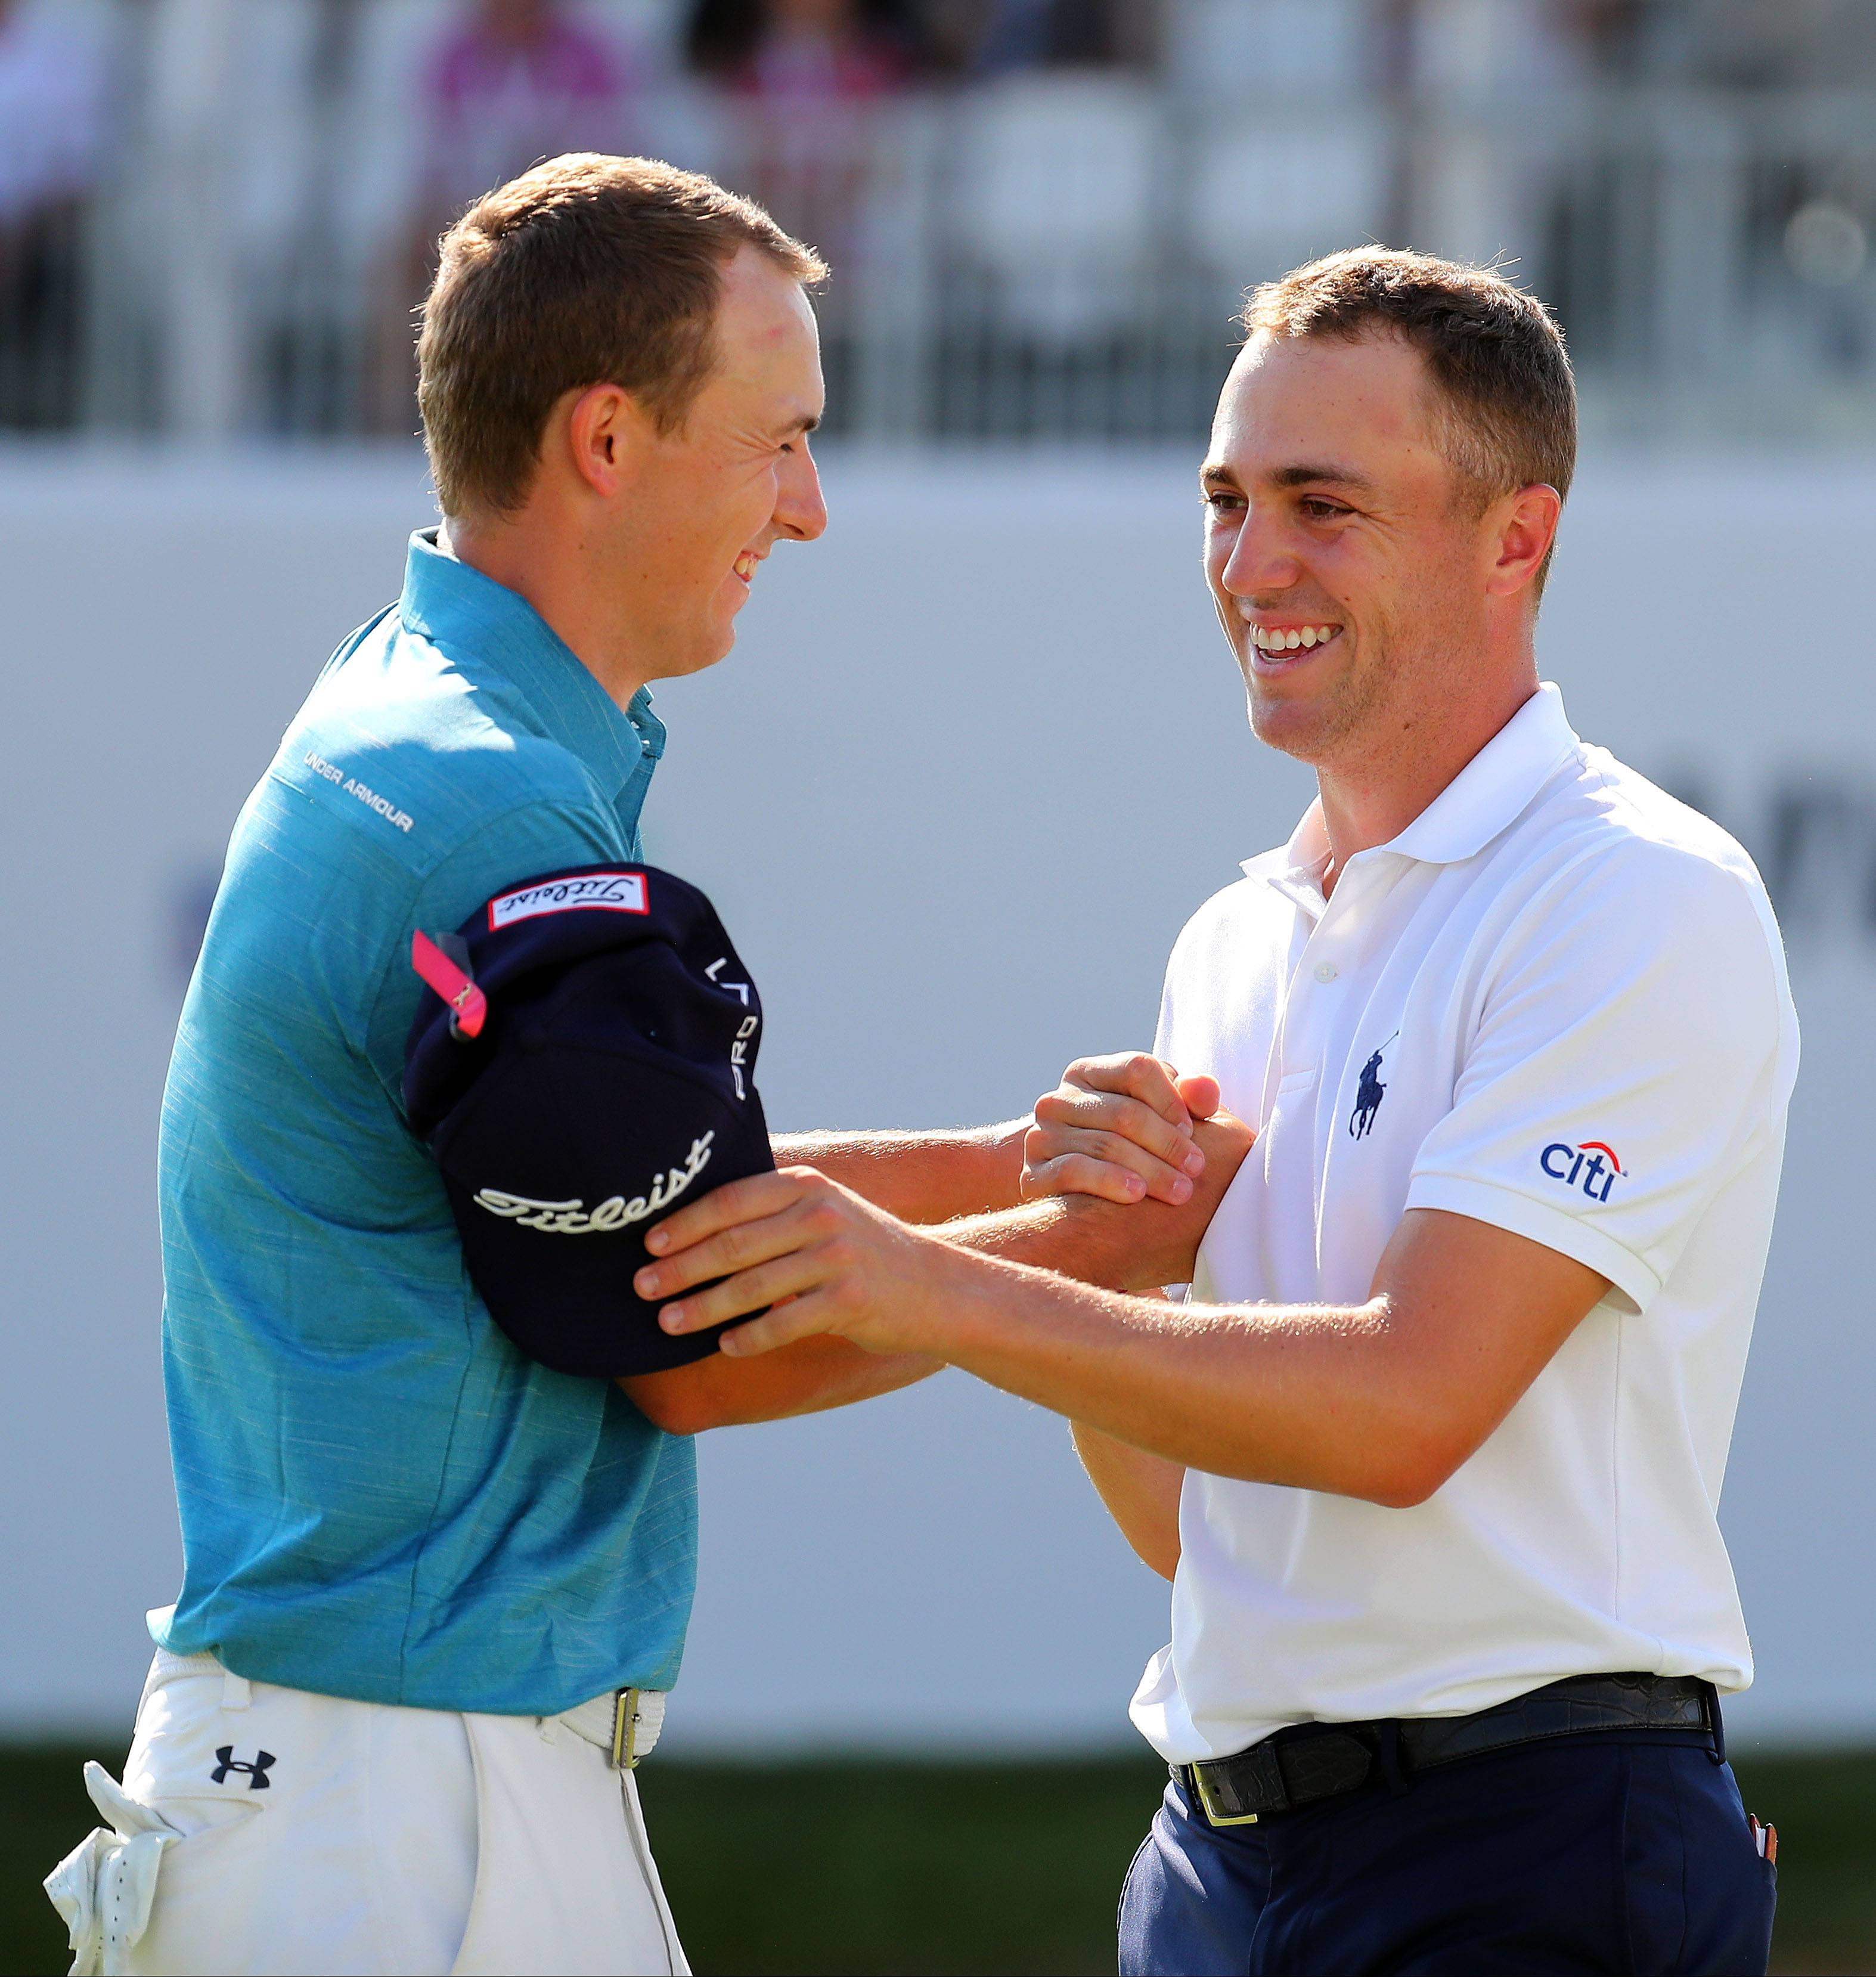 Jordan Spieth, left, and Justin Thomas shake hands on the 18th hole.